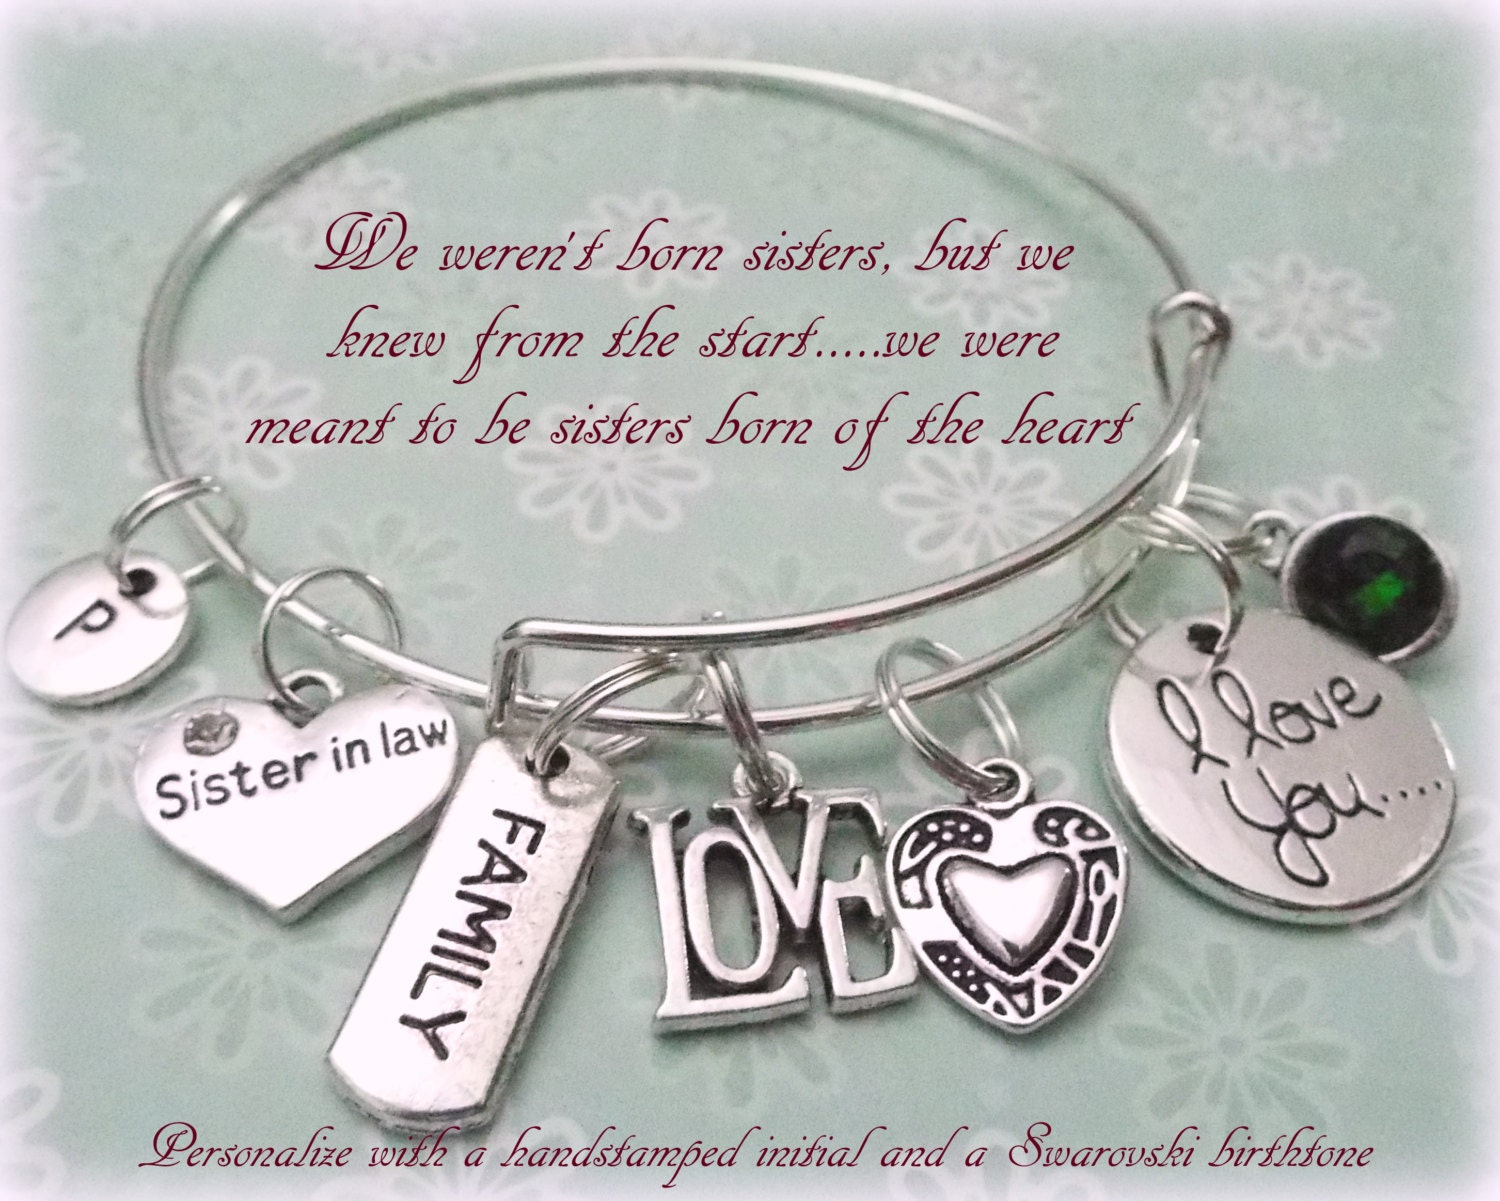 Wedding Gifts For Sisters: Sister In Law Charm Bracelet Gift For Sister In Law